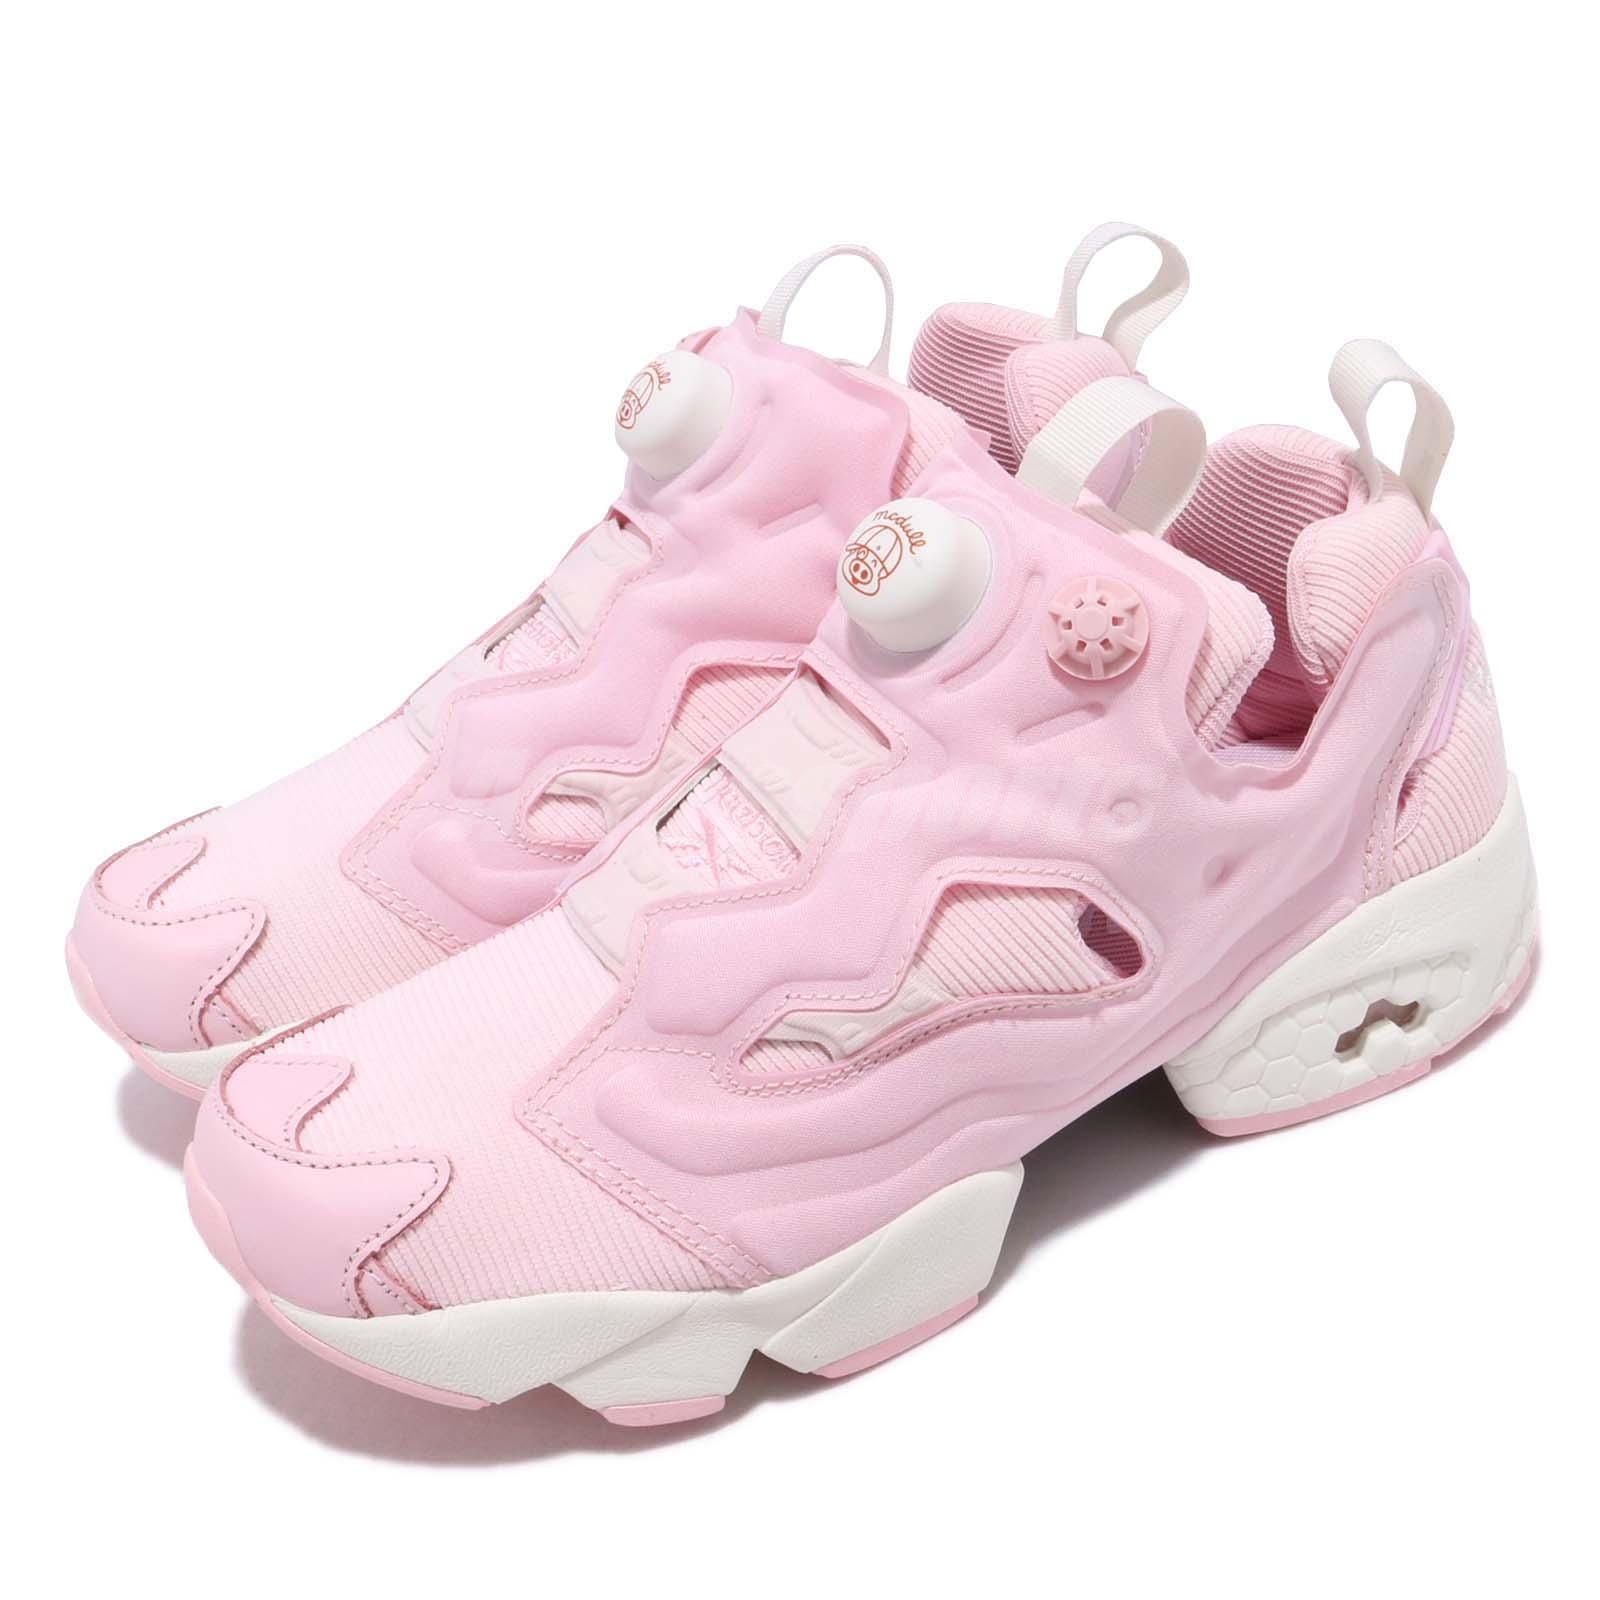 Details about Reebok Insta Pump Fury Black White Gold Red Year of the Pig McDull CNY EF8394